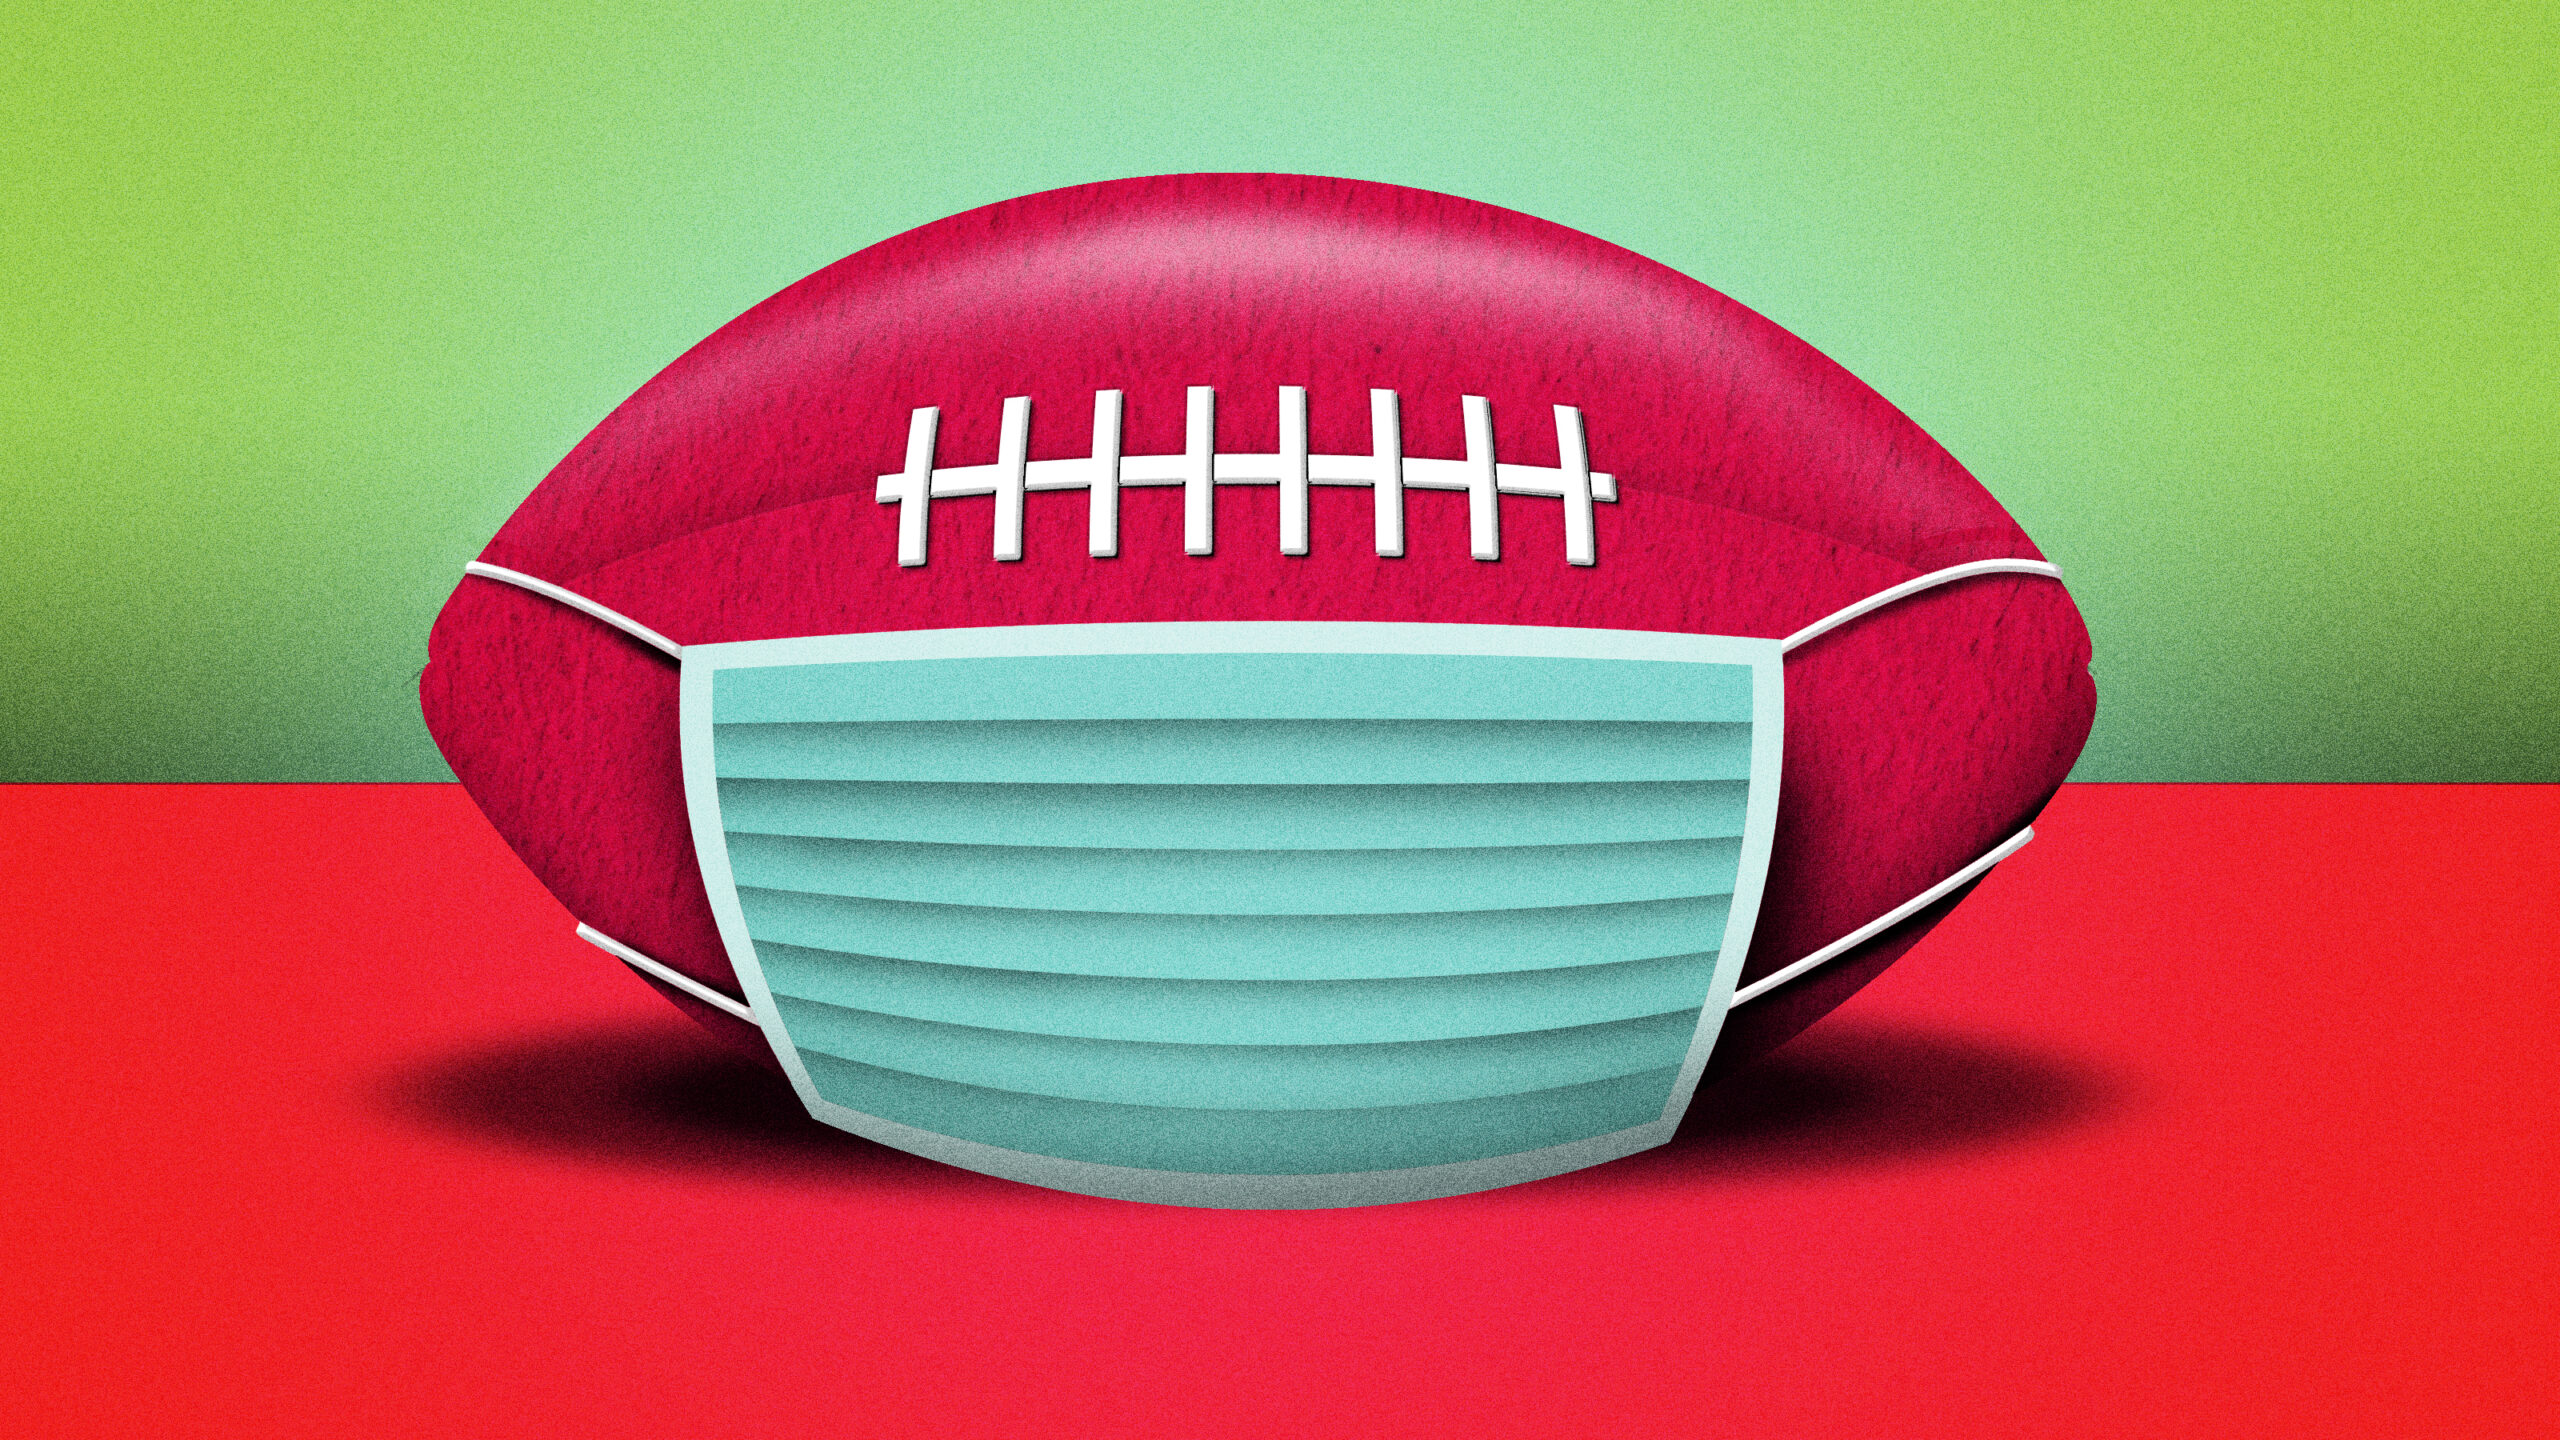 For the upcoming NFL season, the Commissioner and team owners are leaving NOTHING to chance to protect players, coaches and staff – except for the minor suggestion from the CDC that the NFL shut down completely until a vaccine is available, which suggestion they duly ignored.